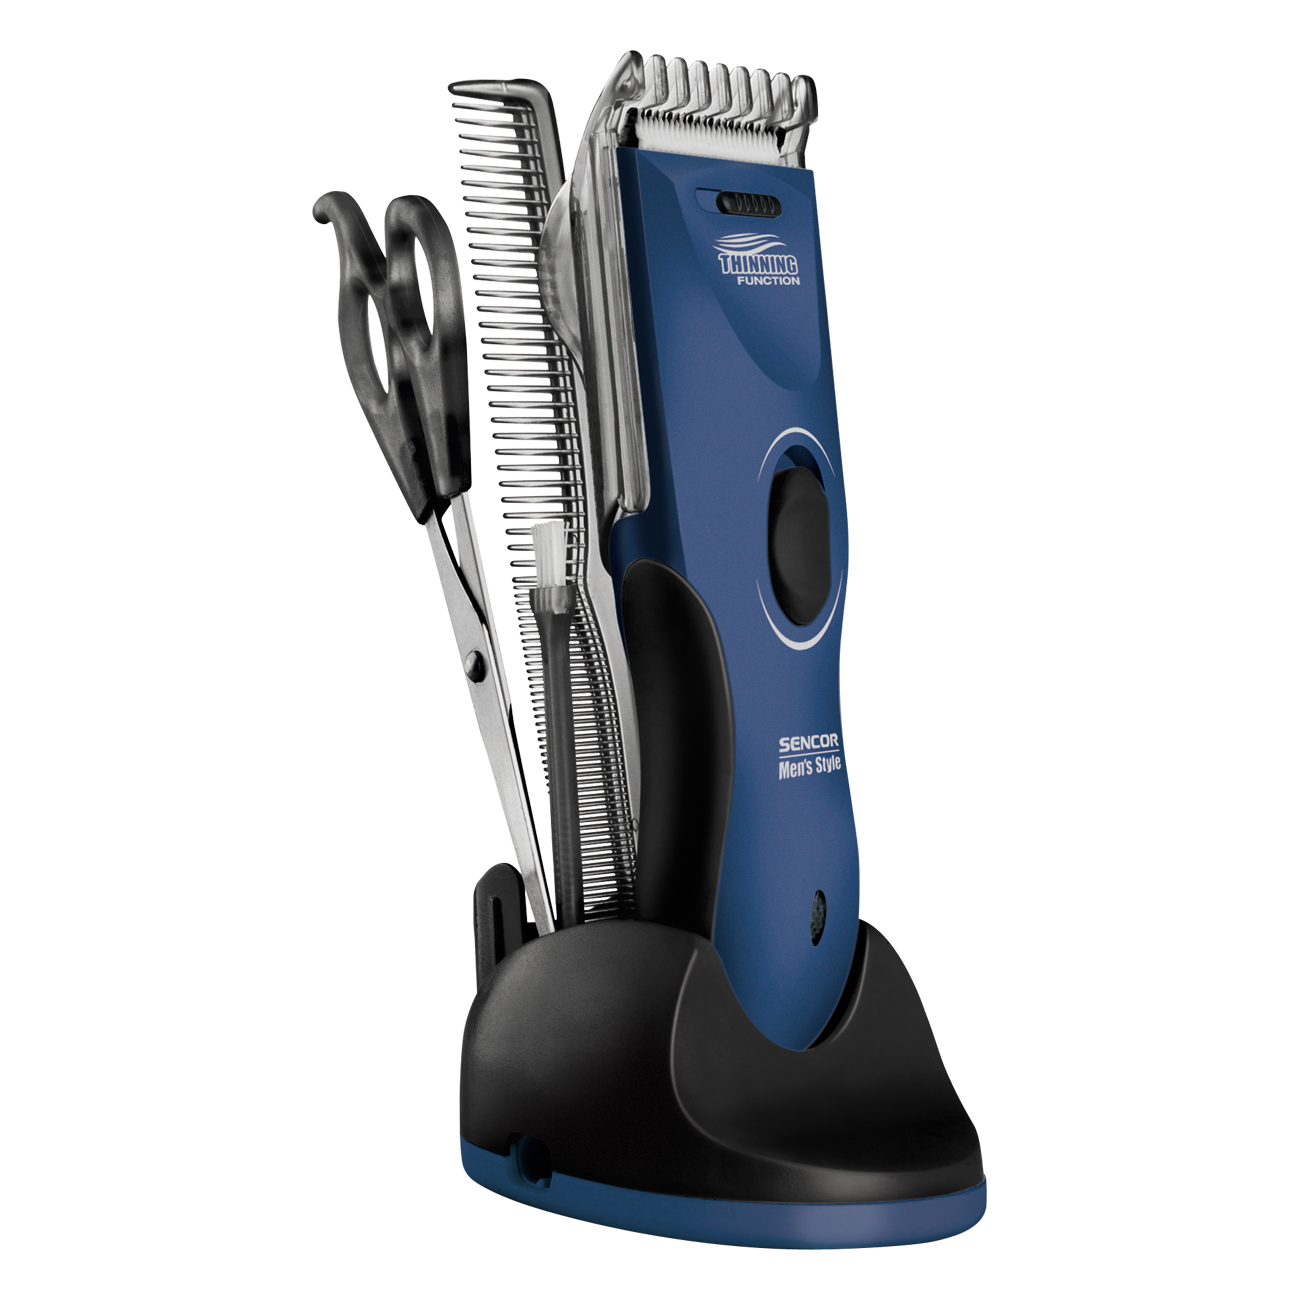 Hair Clipper PNG Transparent Images, Pictures, Photos.